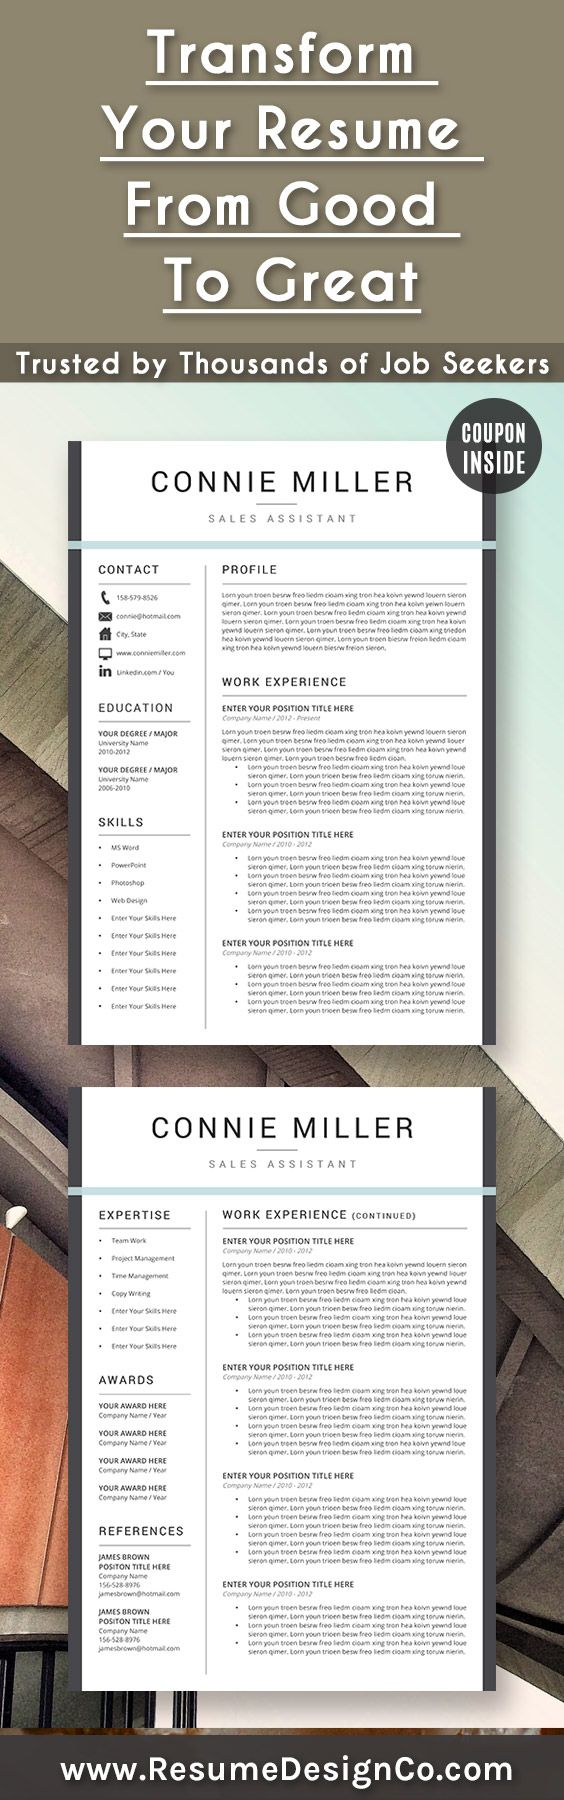 Best 25 Good Cv Ideas On Pinterest Good Cv Format Good Cv